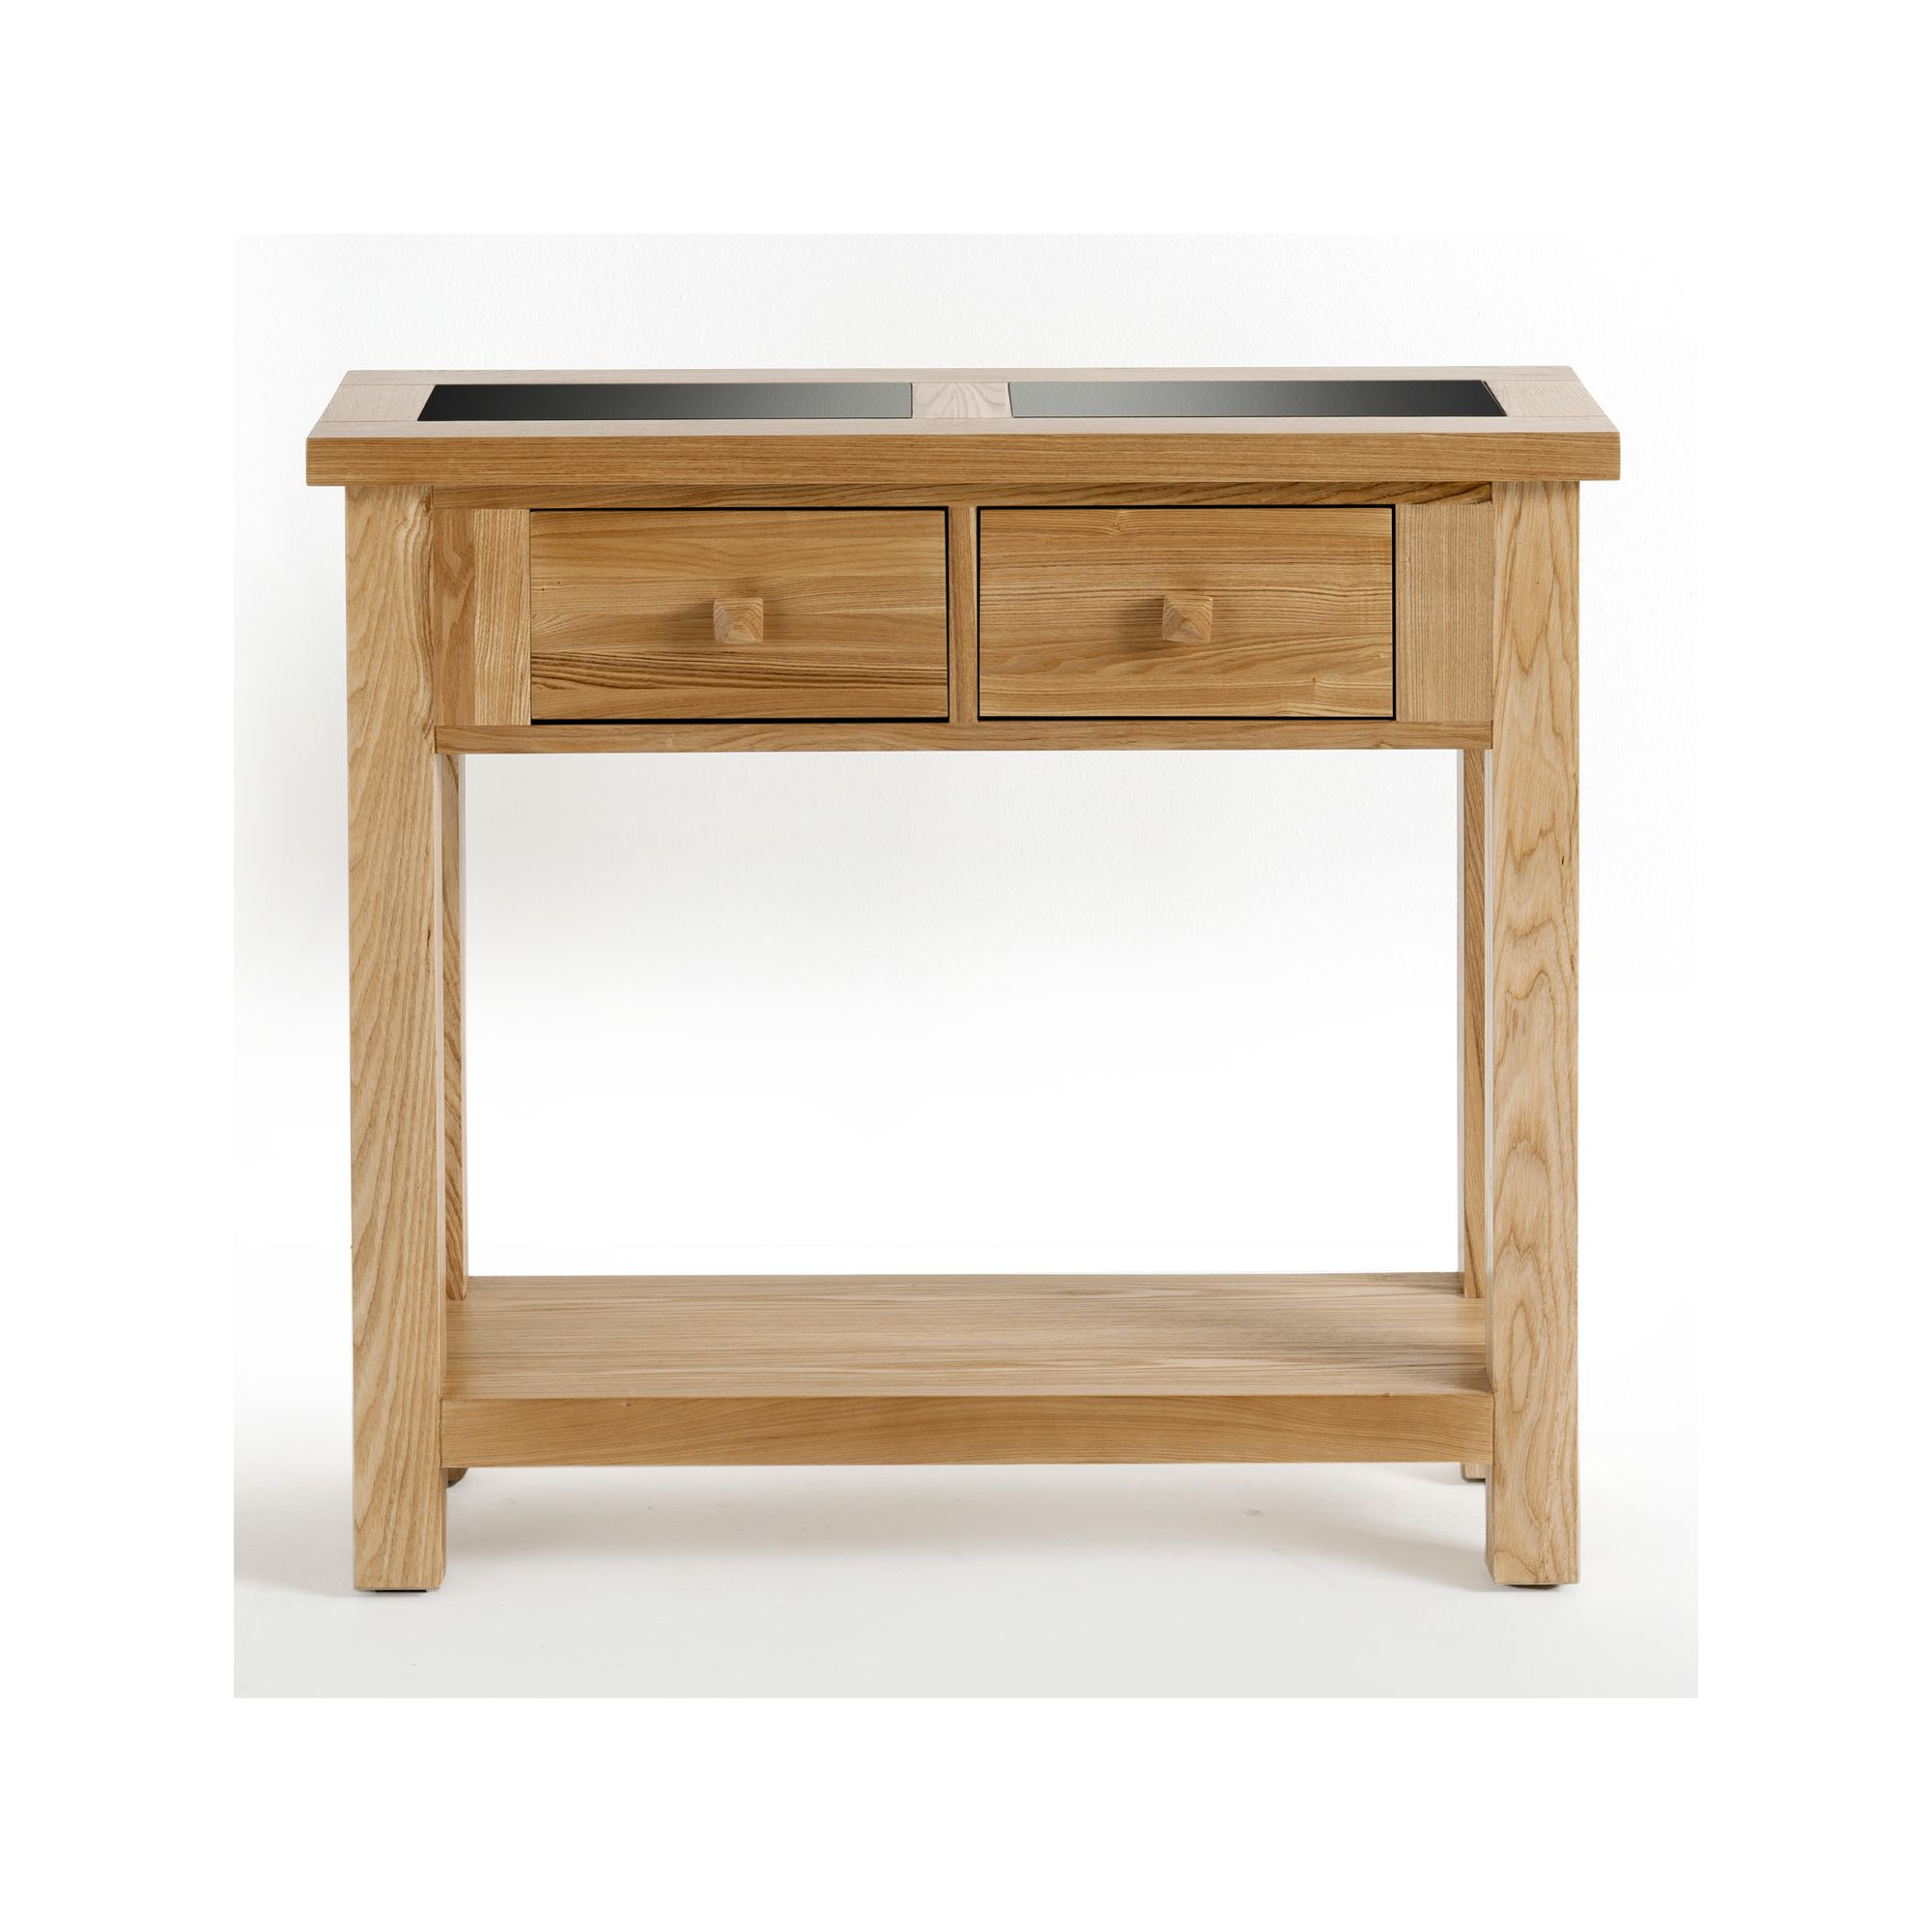 Originals Fusion Console Table at Tesco Direct